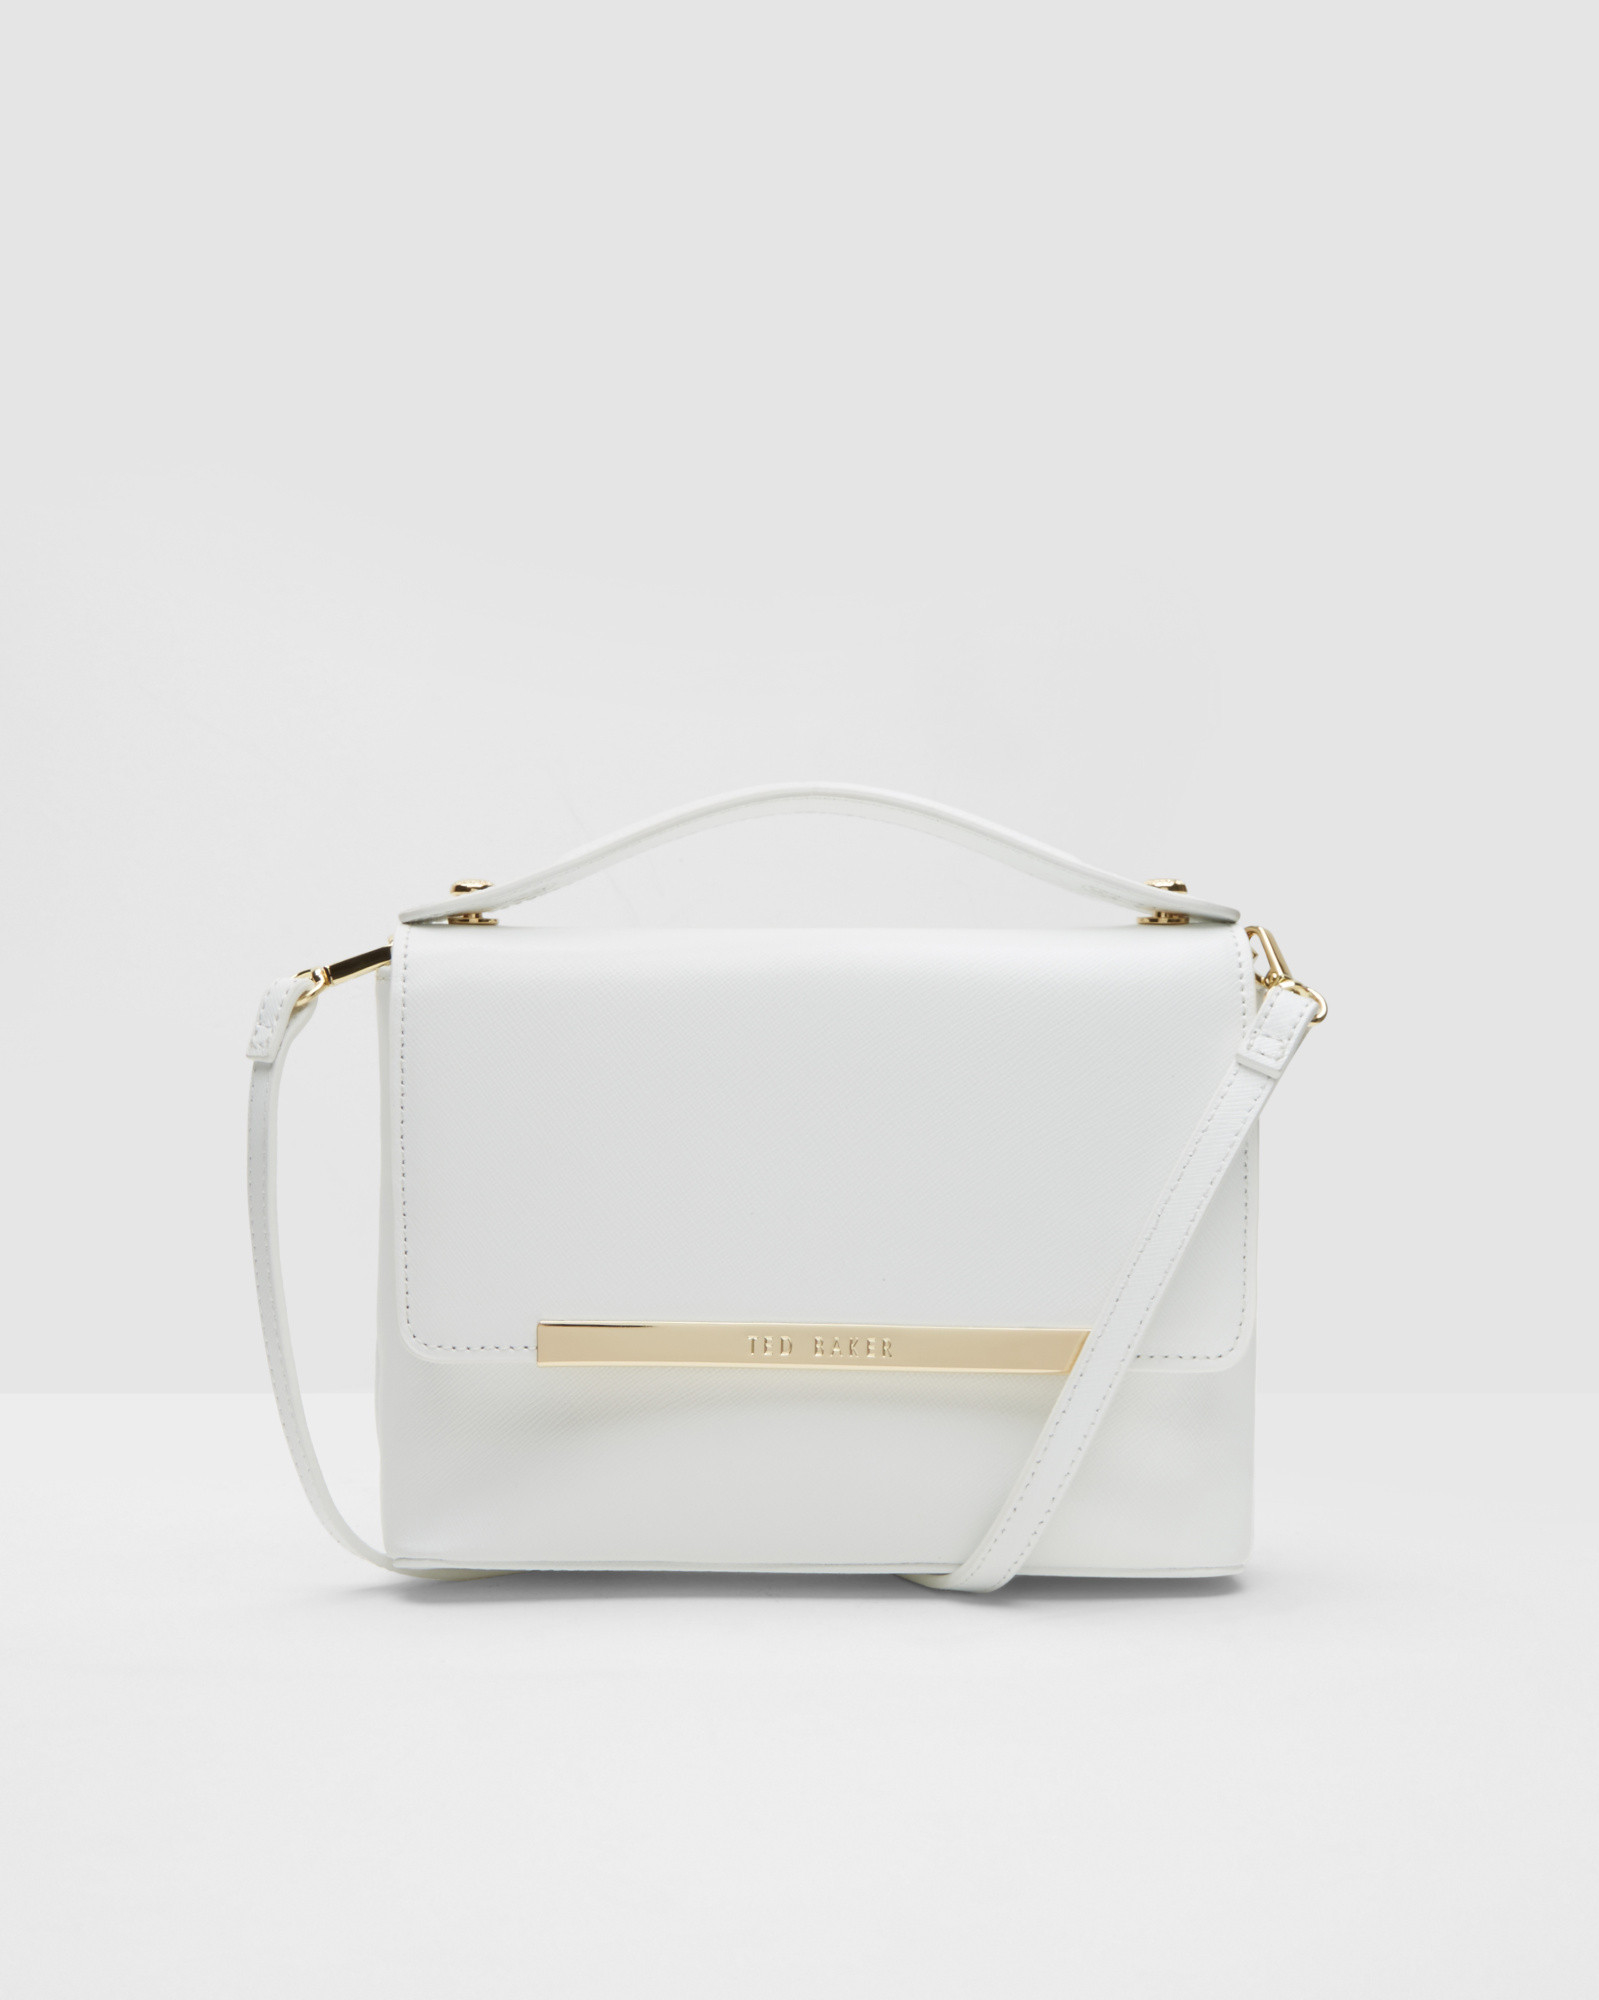 1b0f34310fd7e White Leather Ted Baker Purse - Best Purse Image Ccdbb.Org